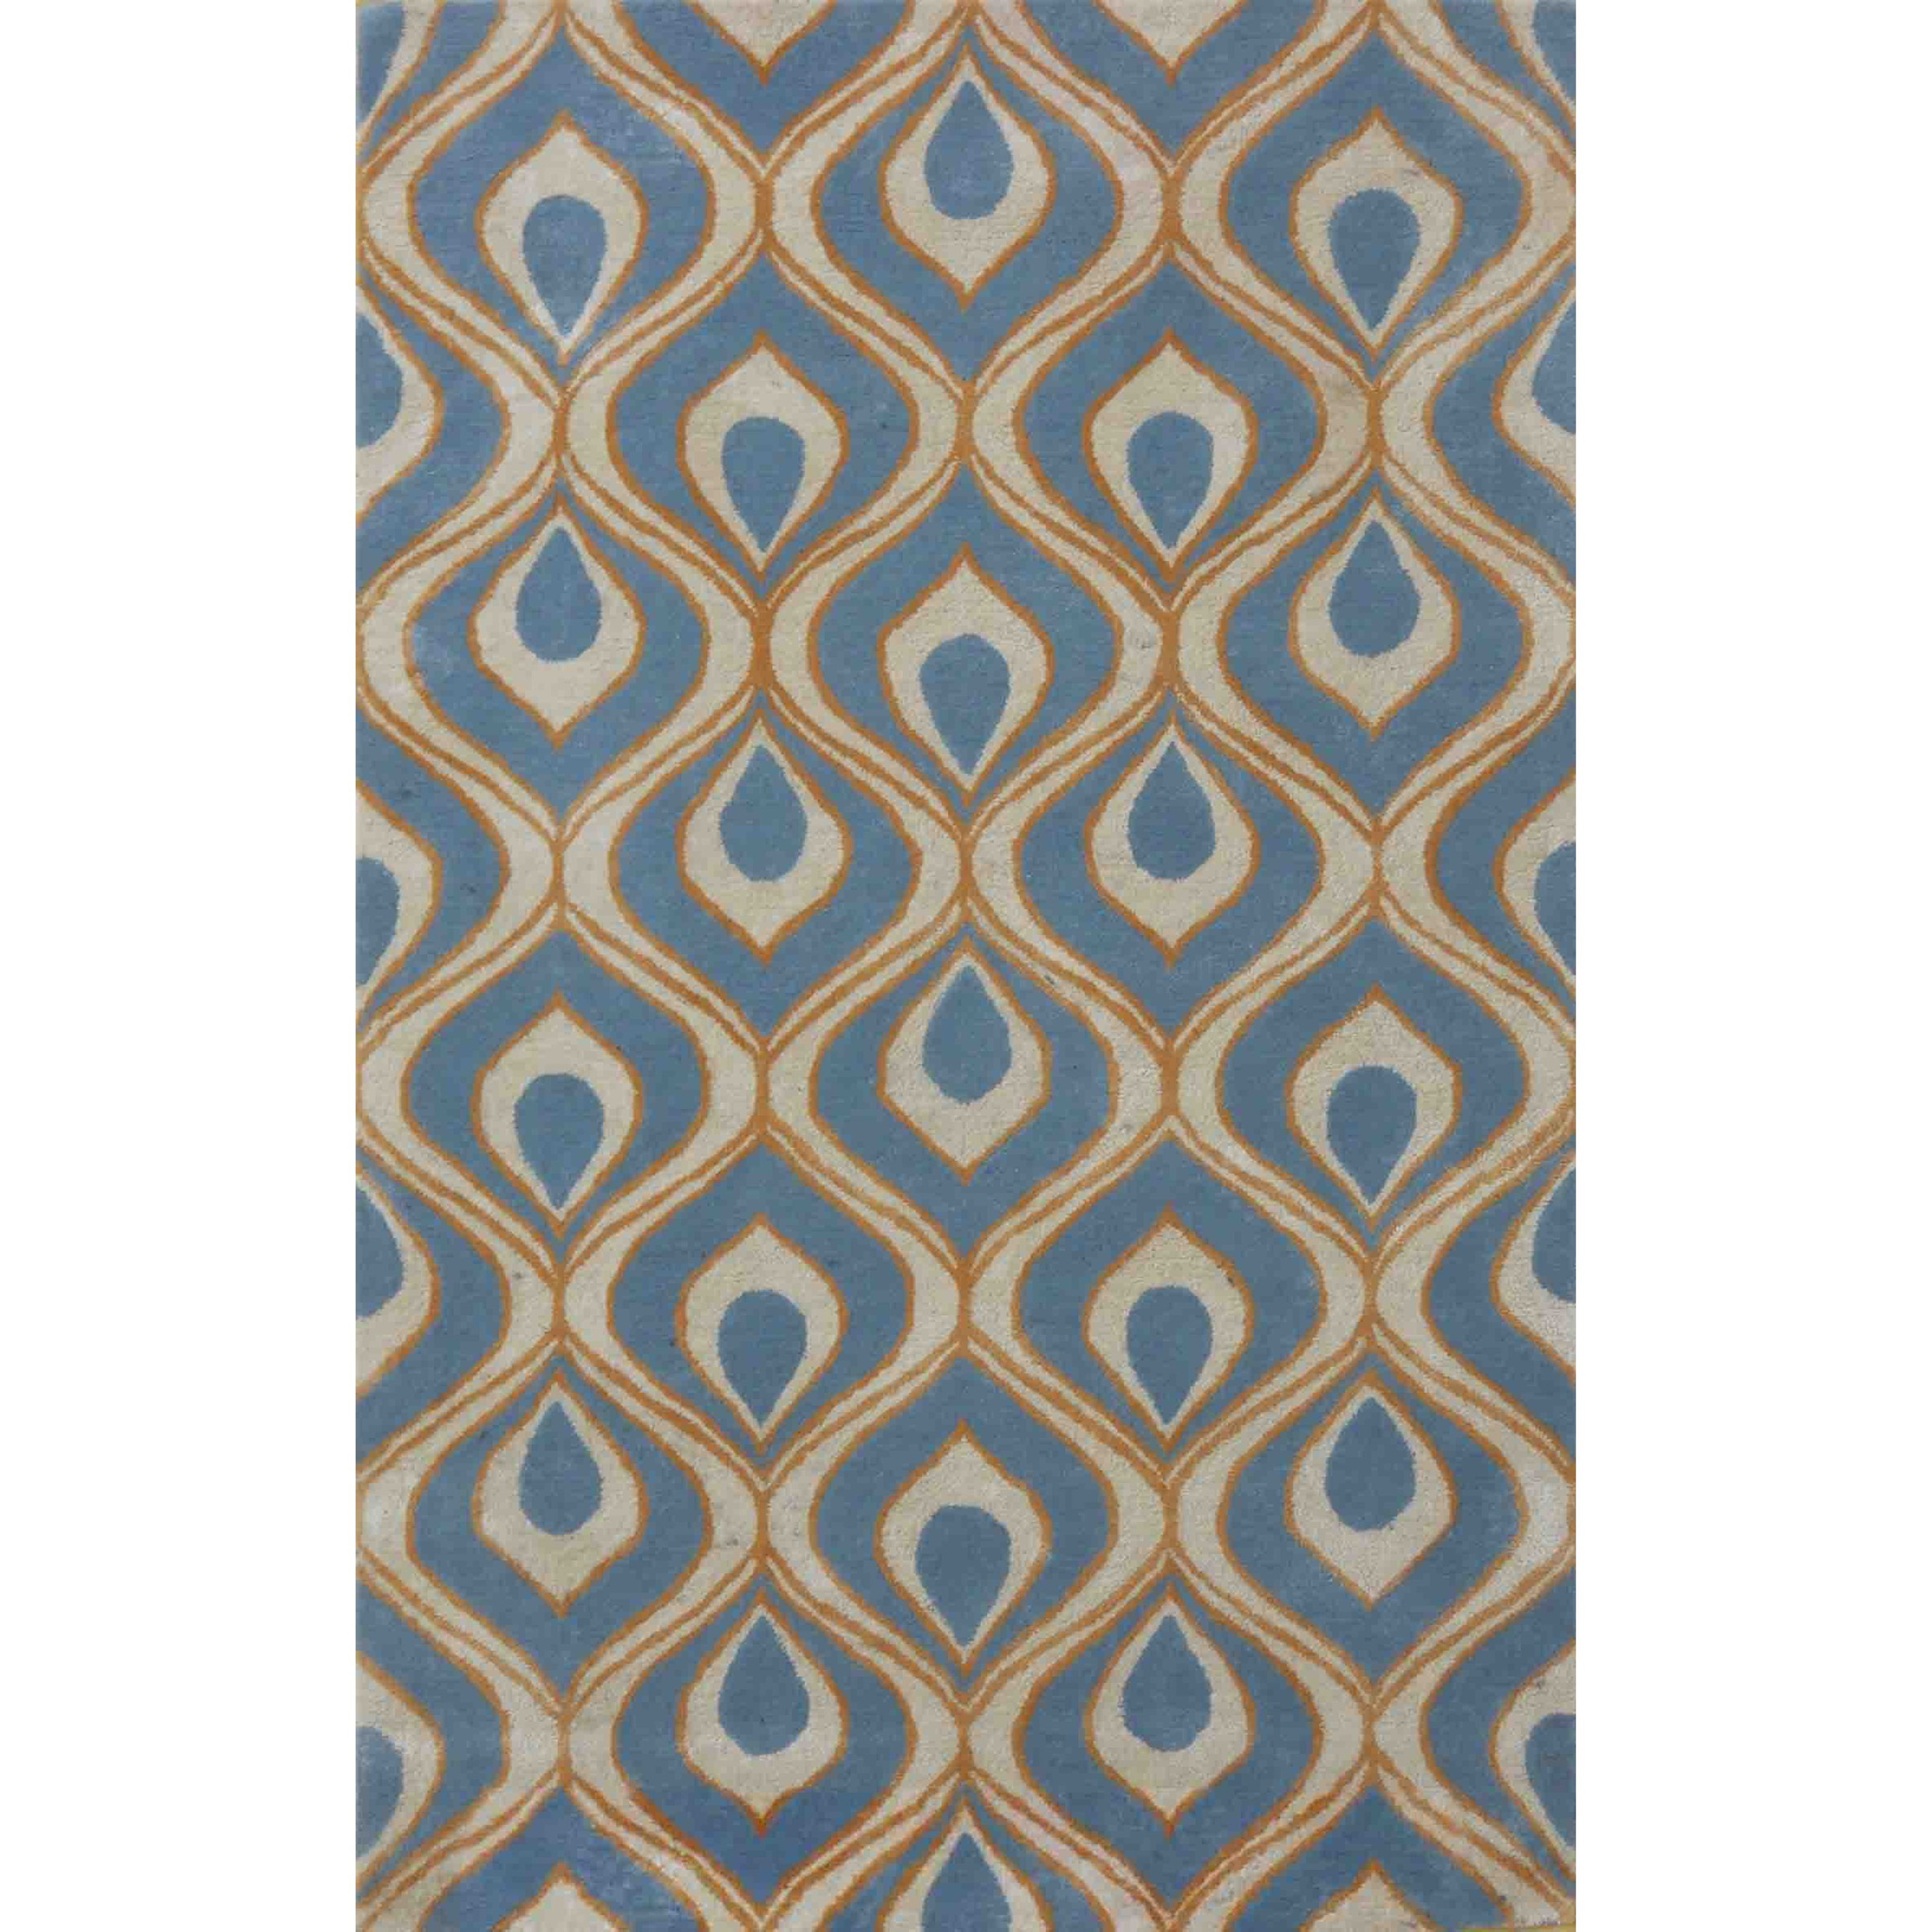 "Bob Mackie Home 2'6"" X 8' Blue Eye Of The Peacock Area Rug by Kas at Darvin Furniture"